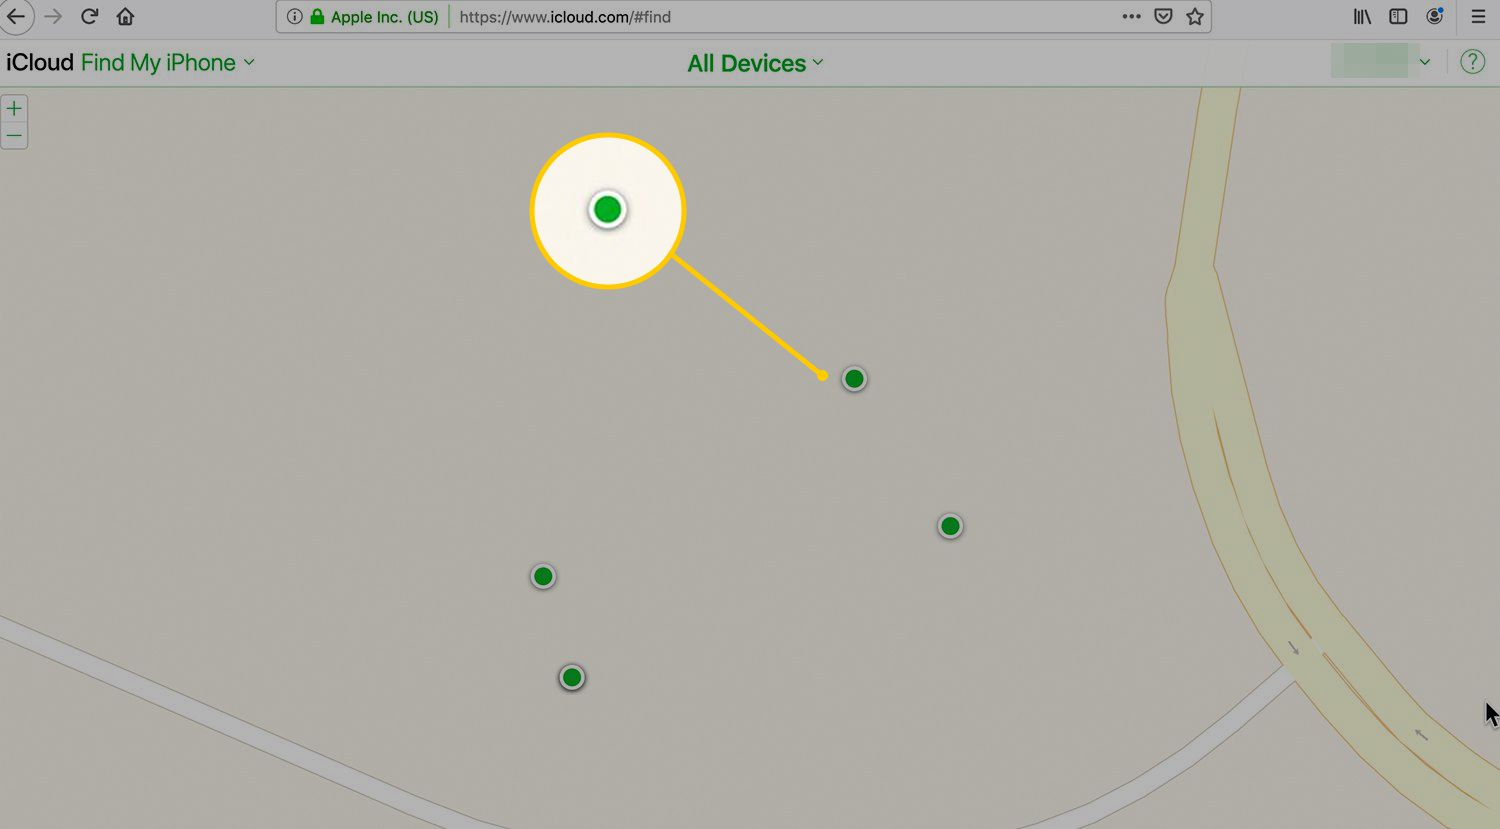 Green dot indicating online iPhone at iCloud website